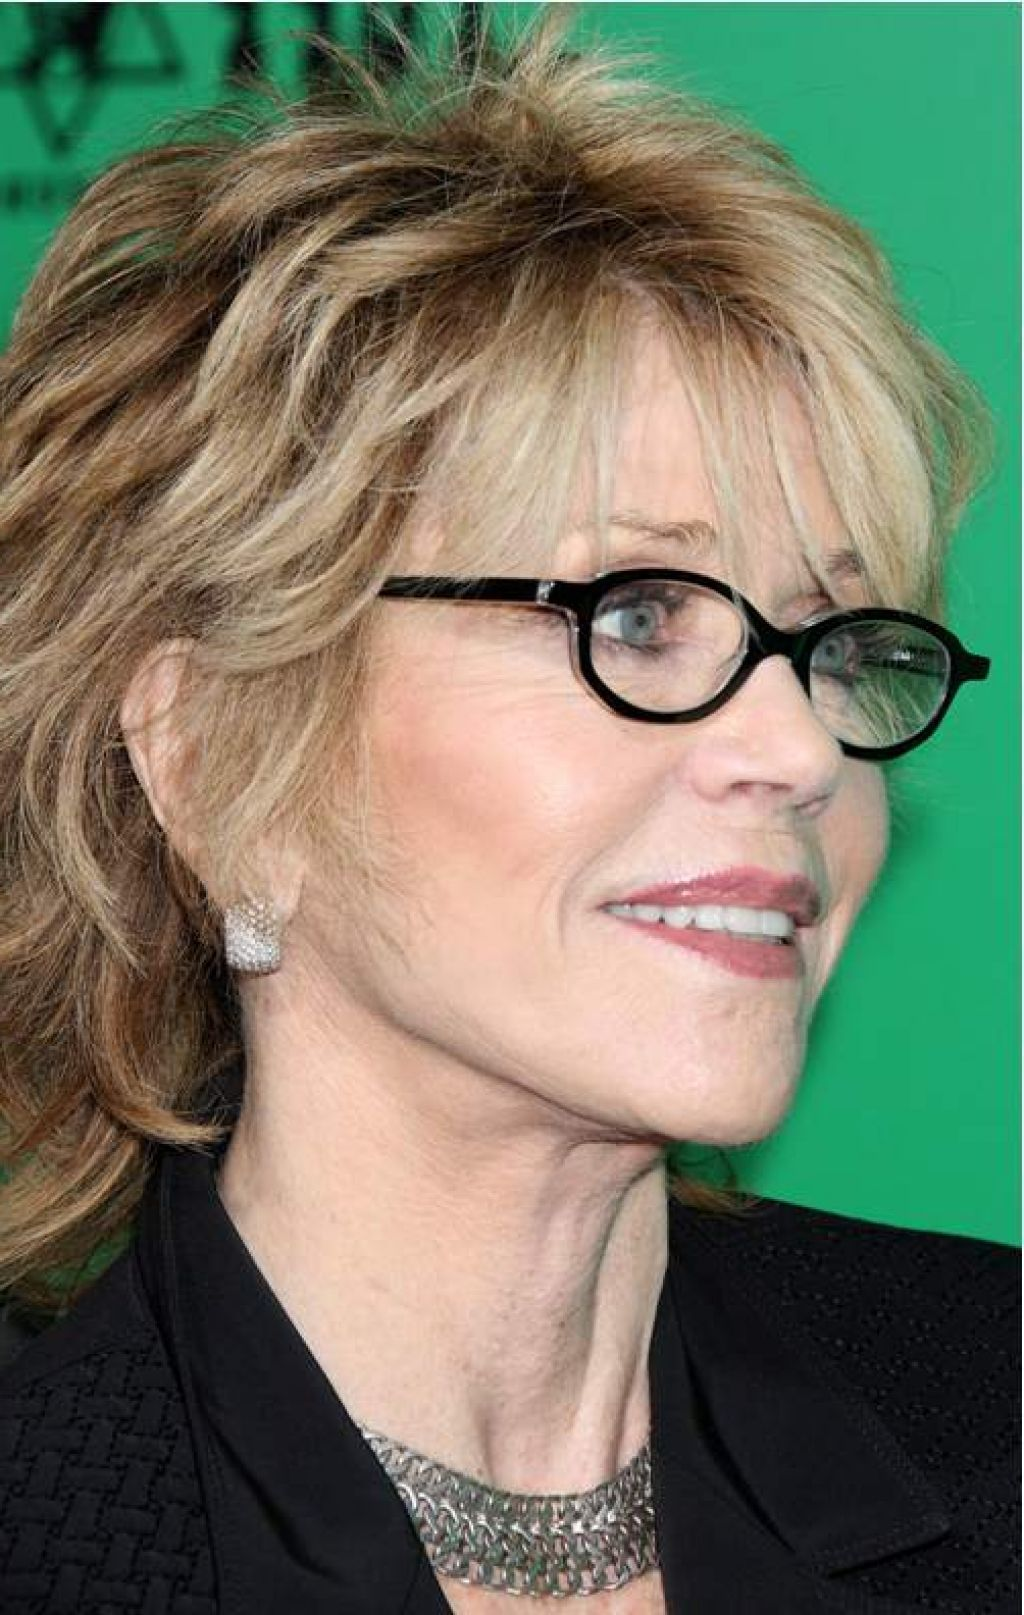 Short Hairstyles With Glasses - Hairstyles for women over 60 with glasses